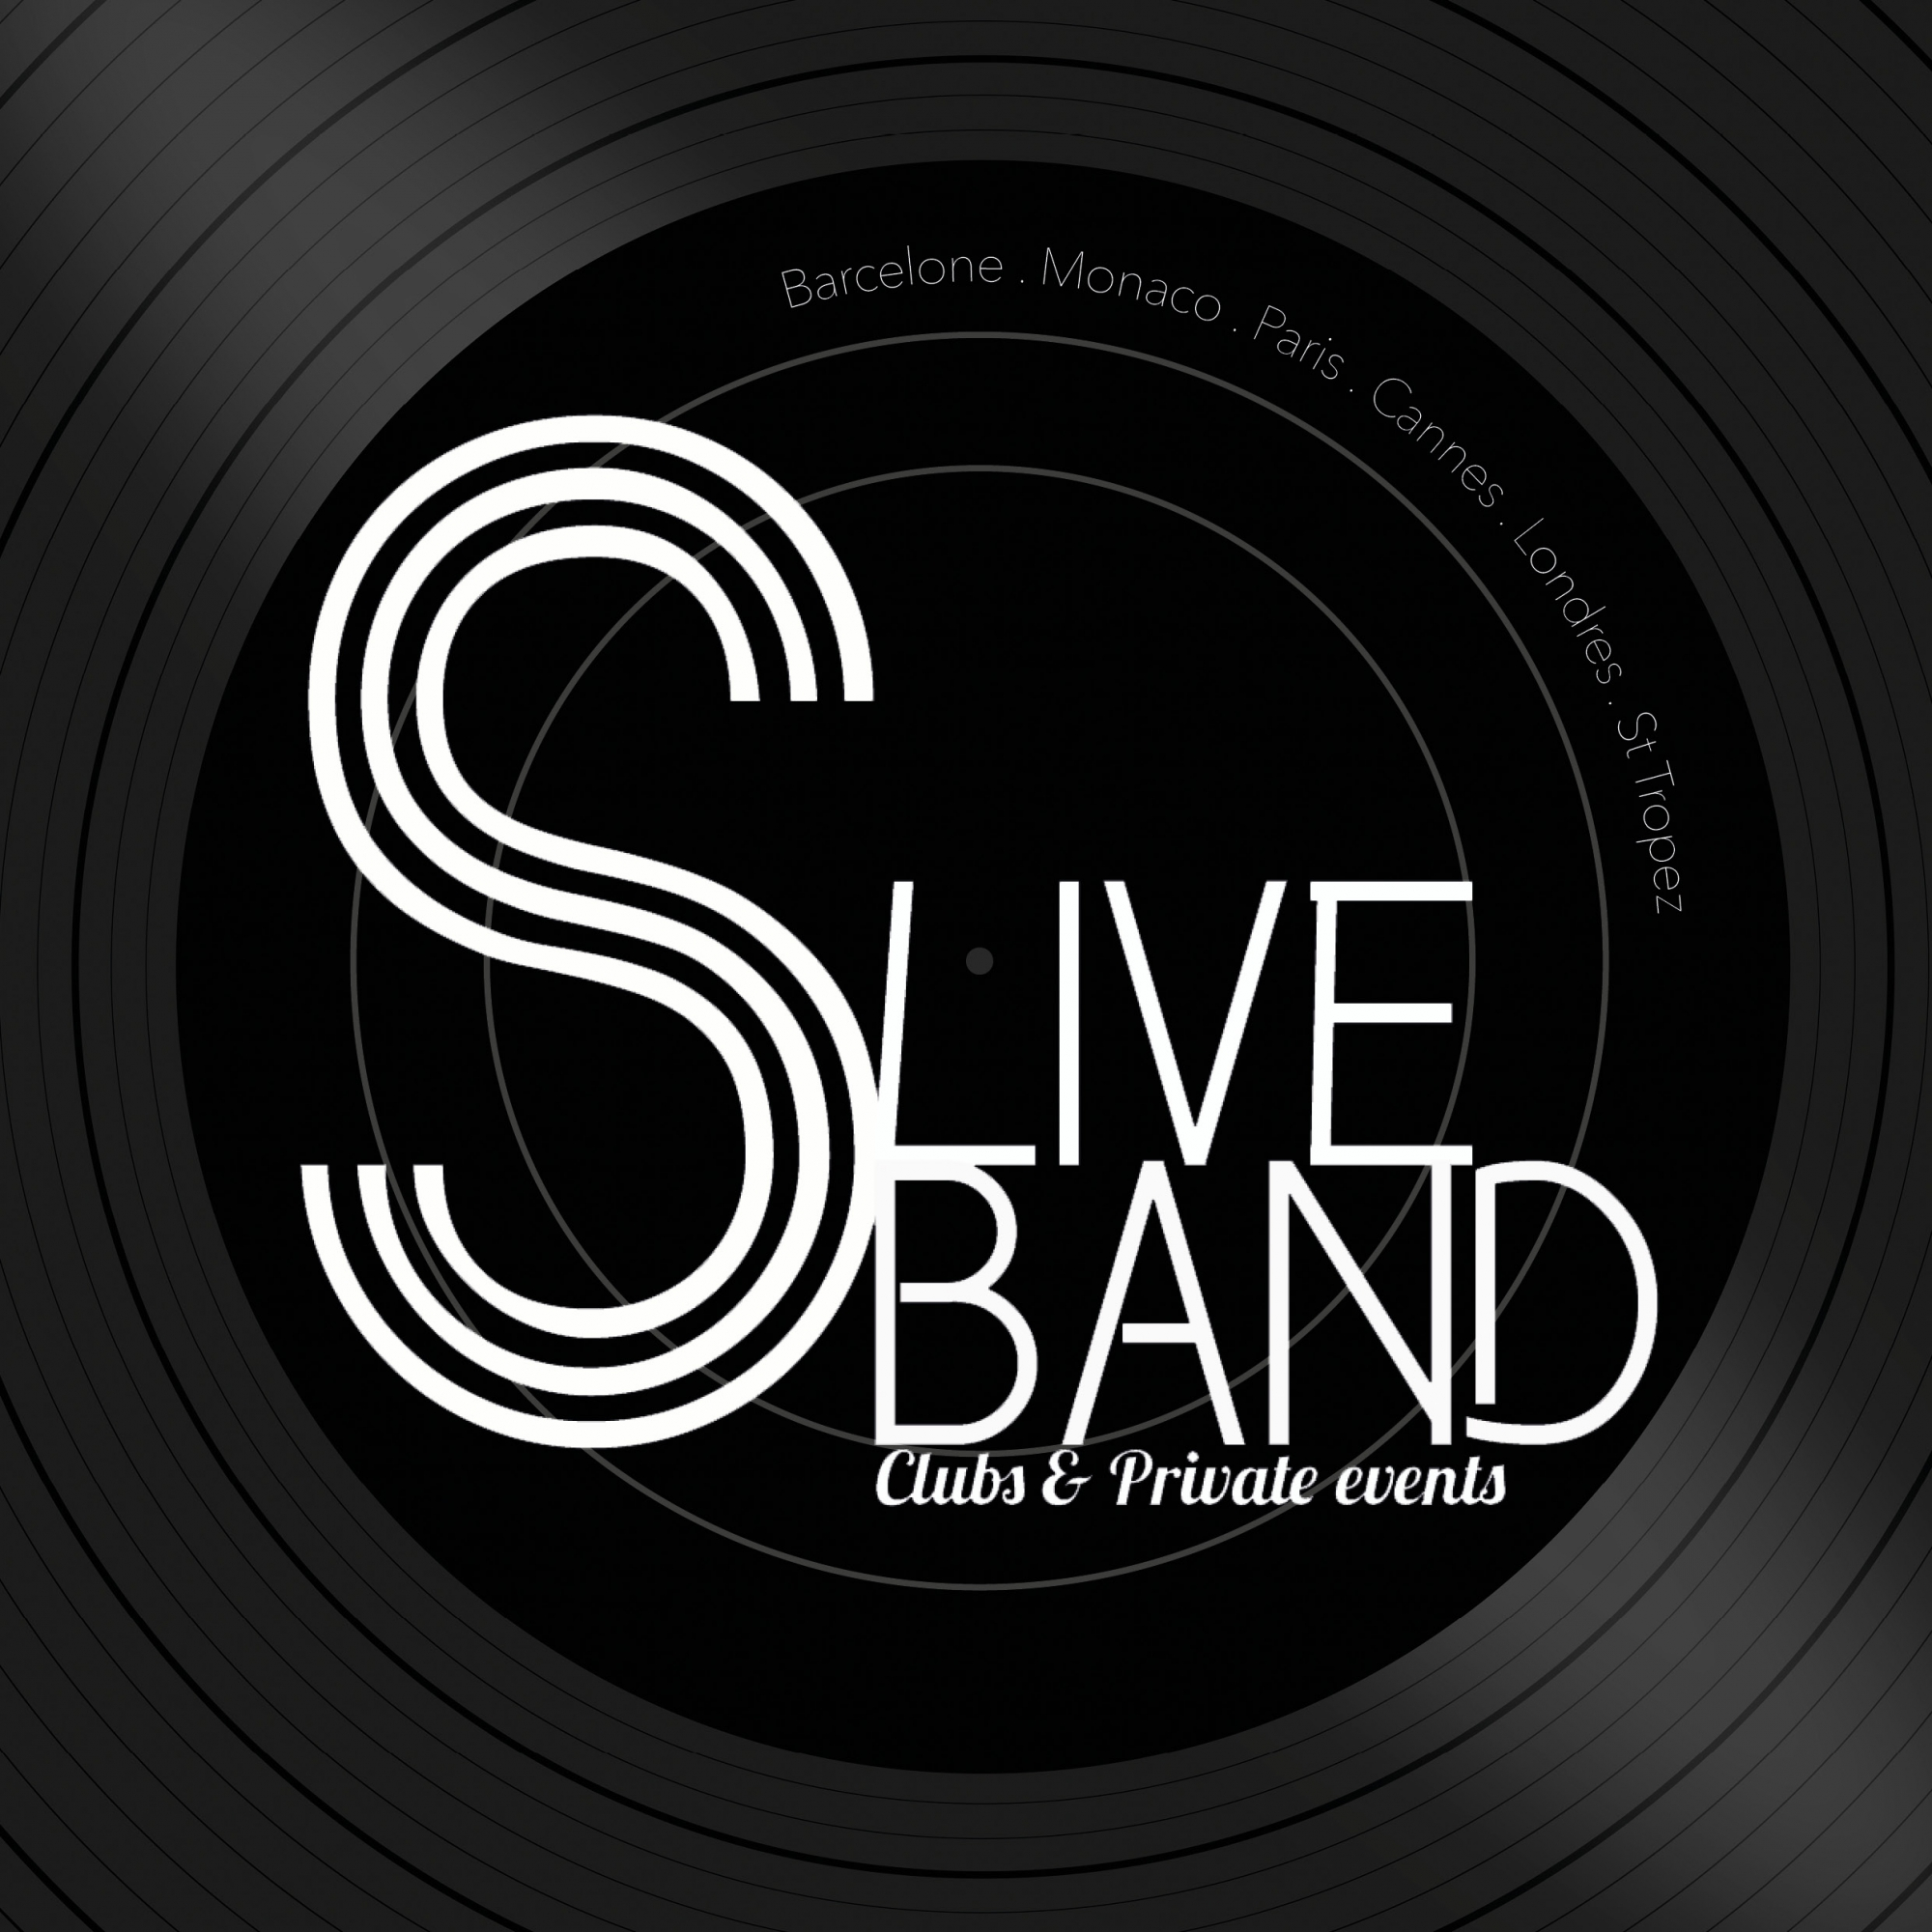 S.LIVE Band